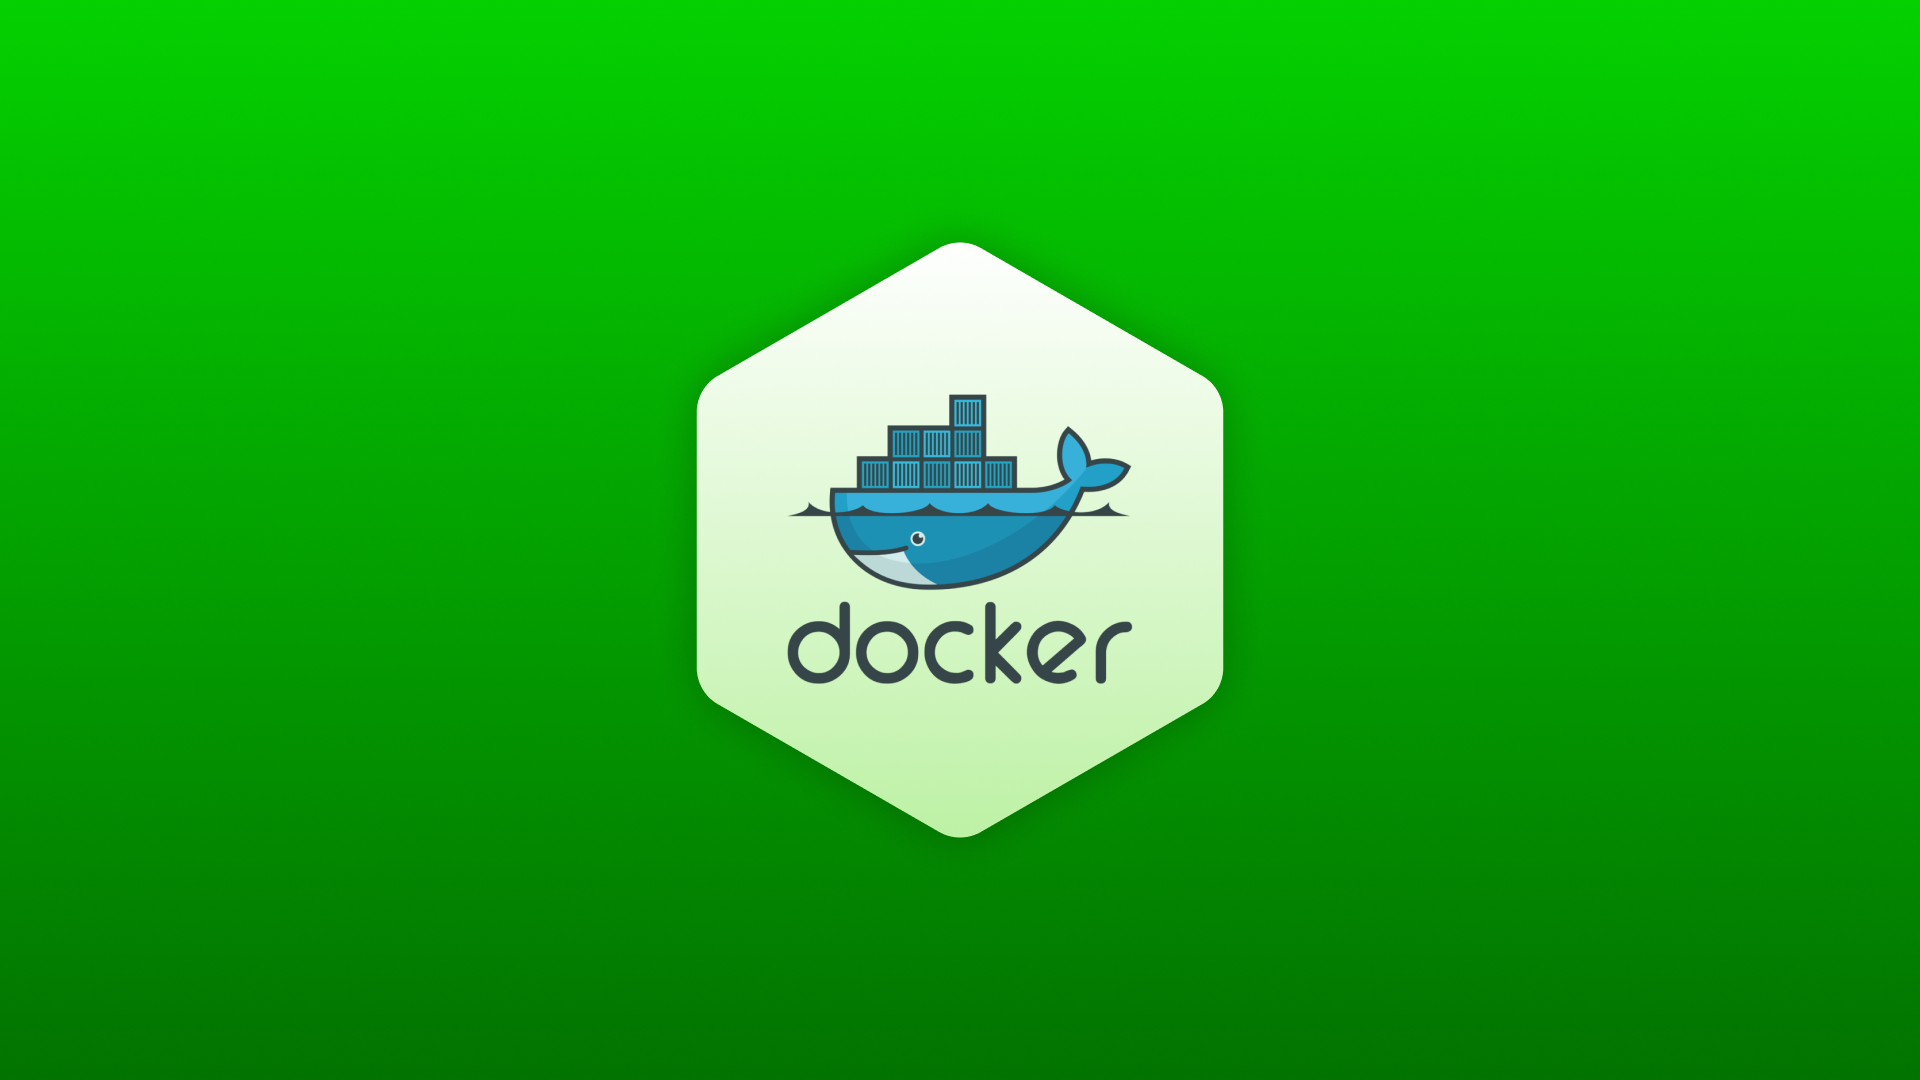 Node.js on Docker